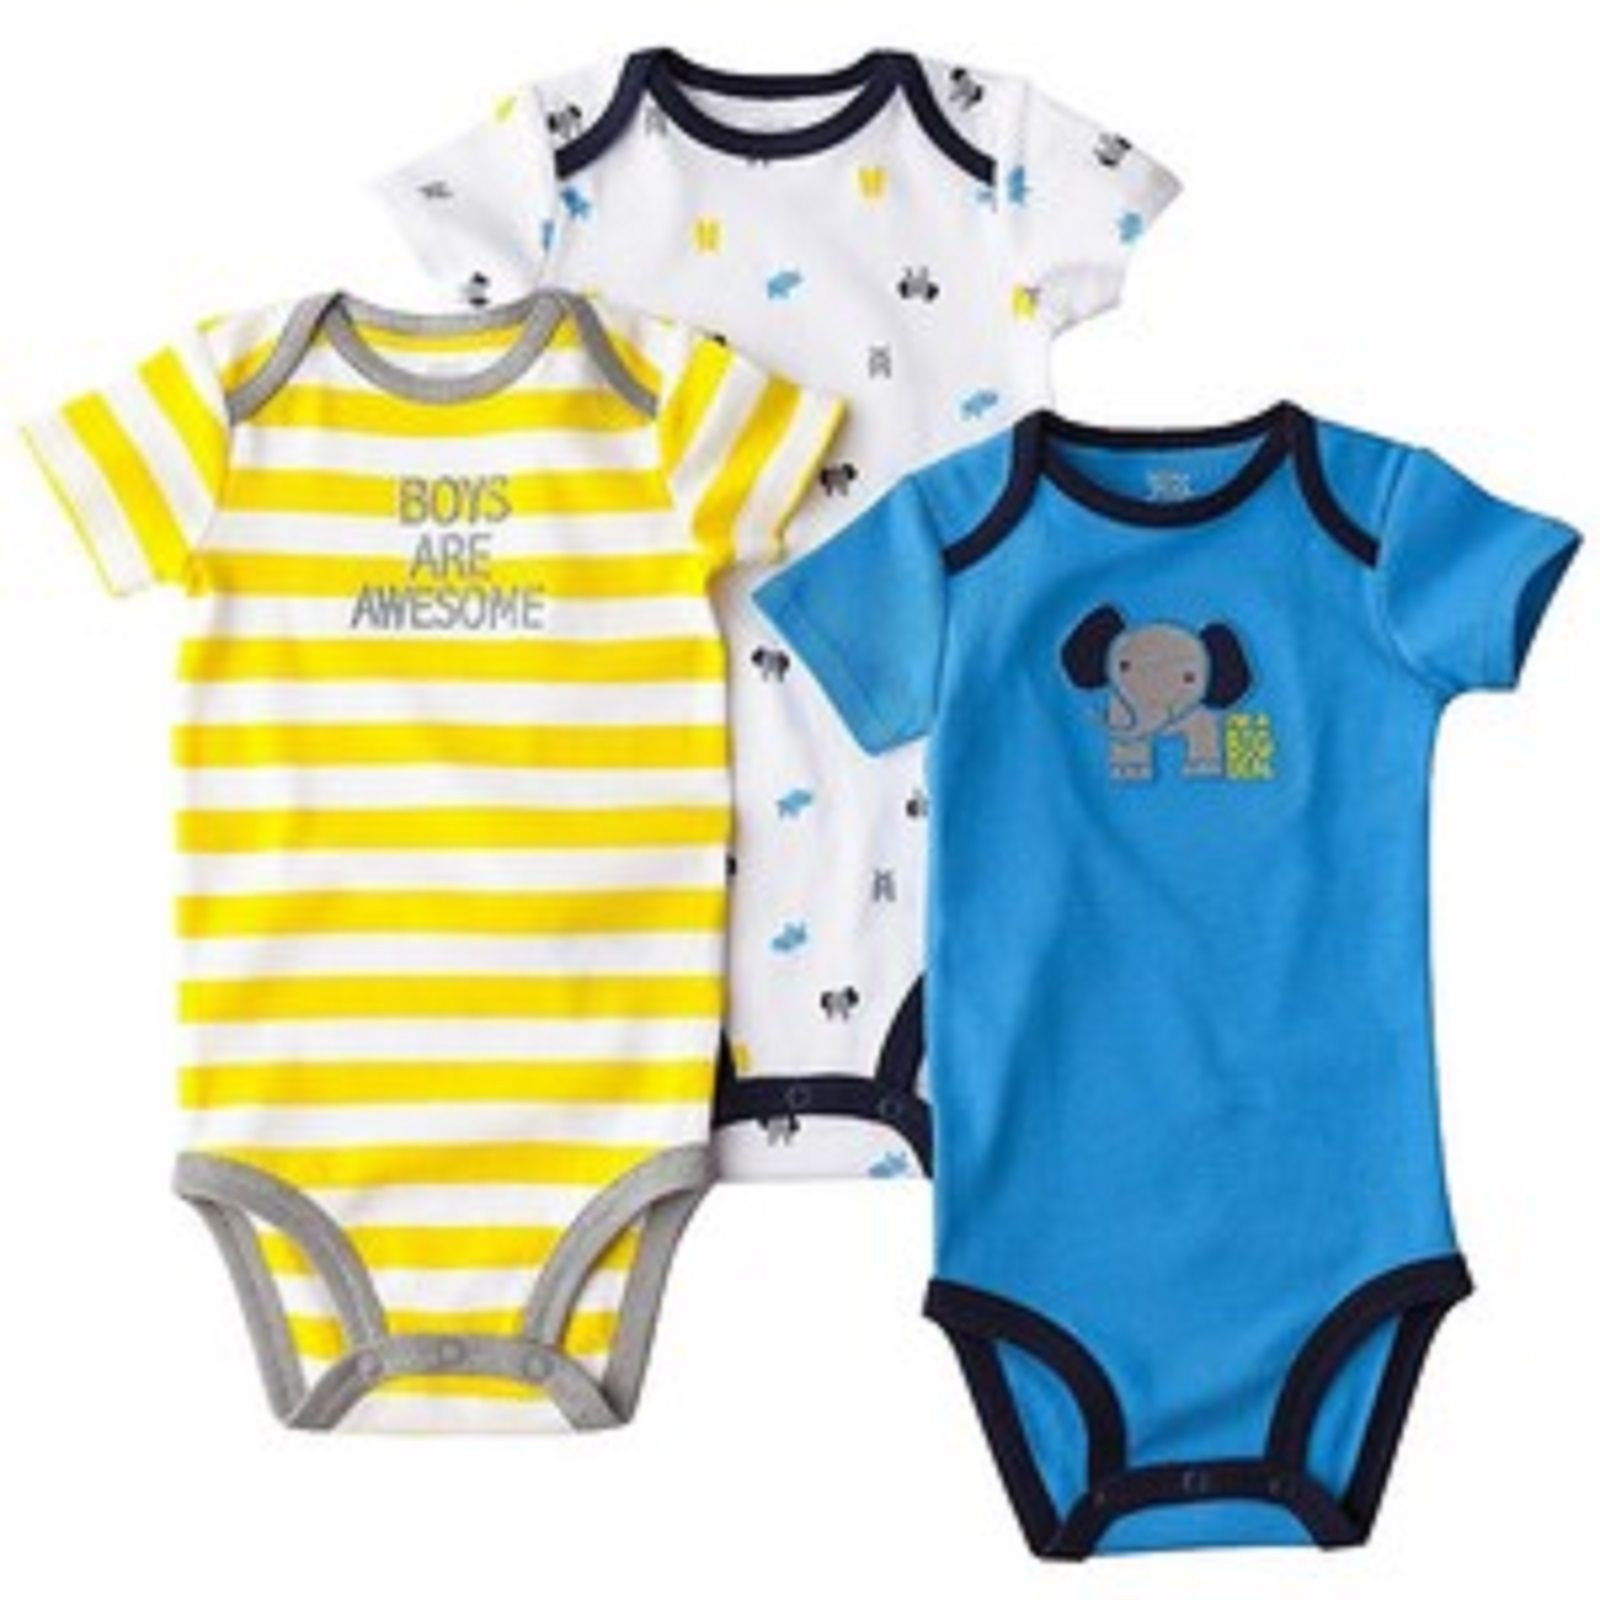 Just One You Carter Girls 3 Pack Bodysuit 2 Choices Sizes NB 3M or 12M NWT